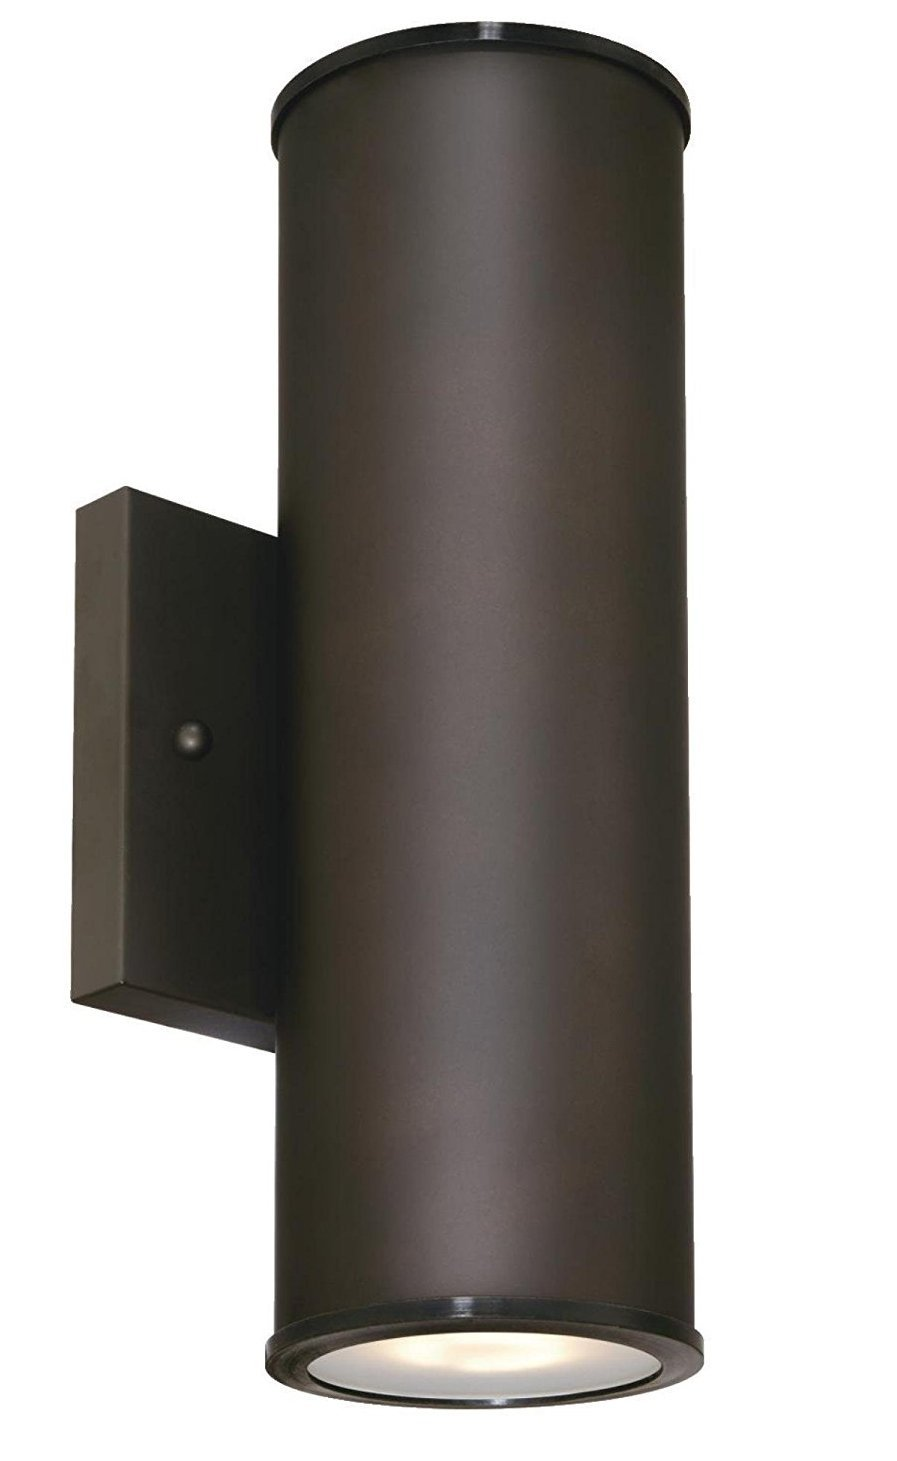 Two-Light LED Up and Down Light Outdoor Wall Fixture with Frosted Glass Lens, Oil Rubbed Bronze by Westinghouse